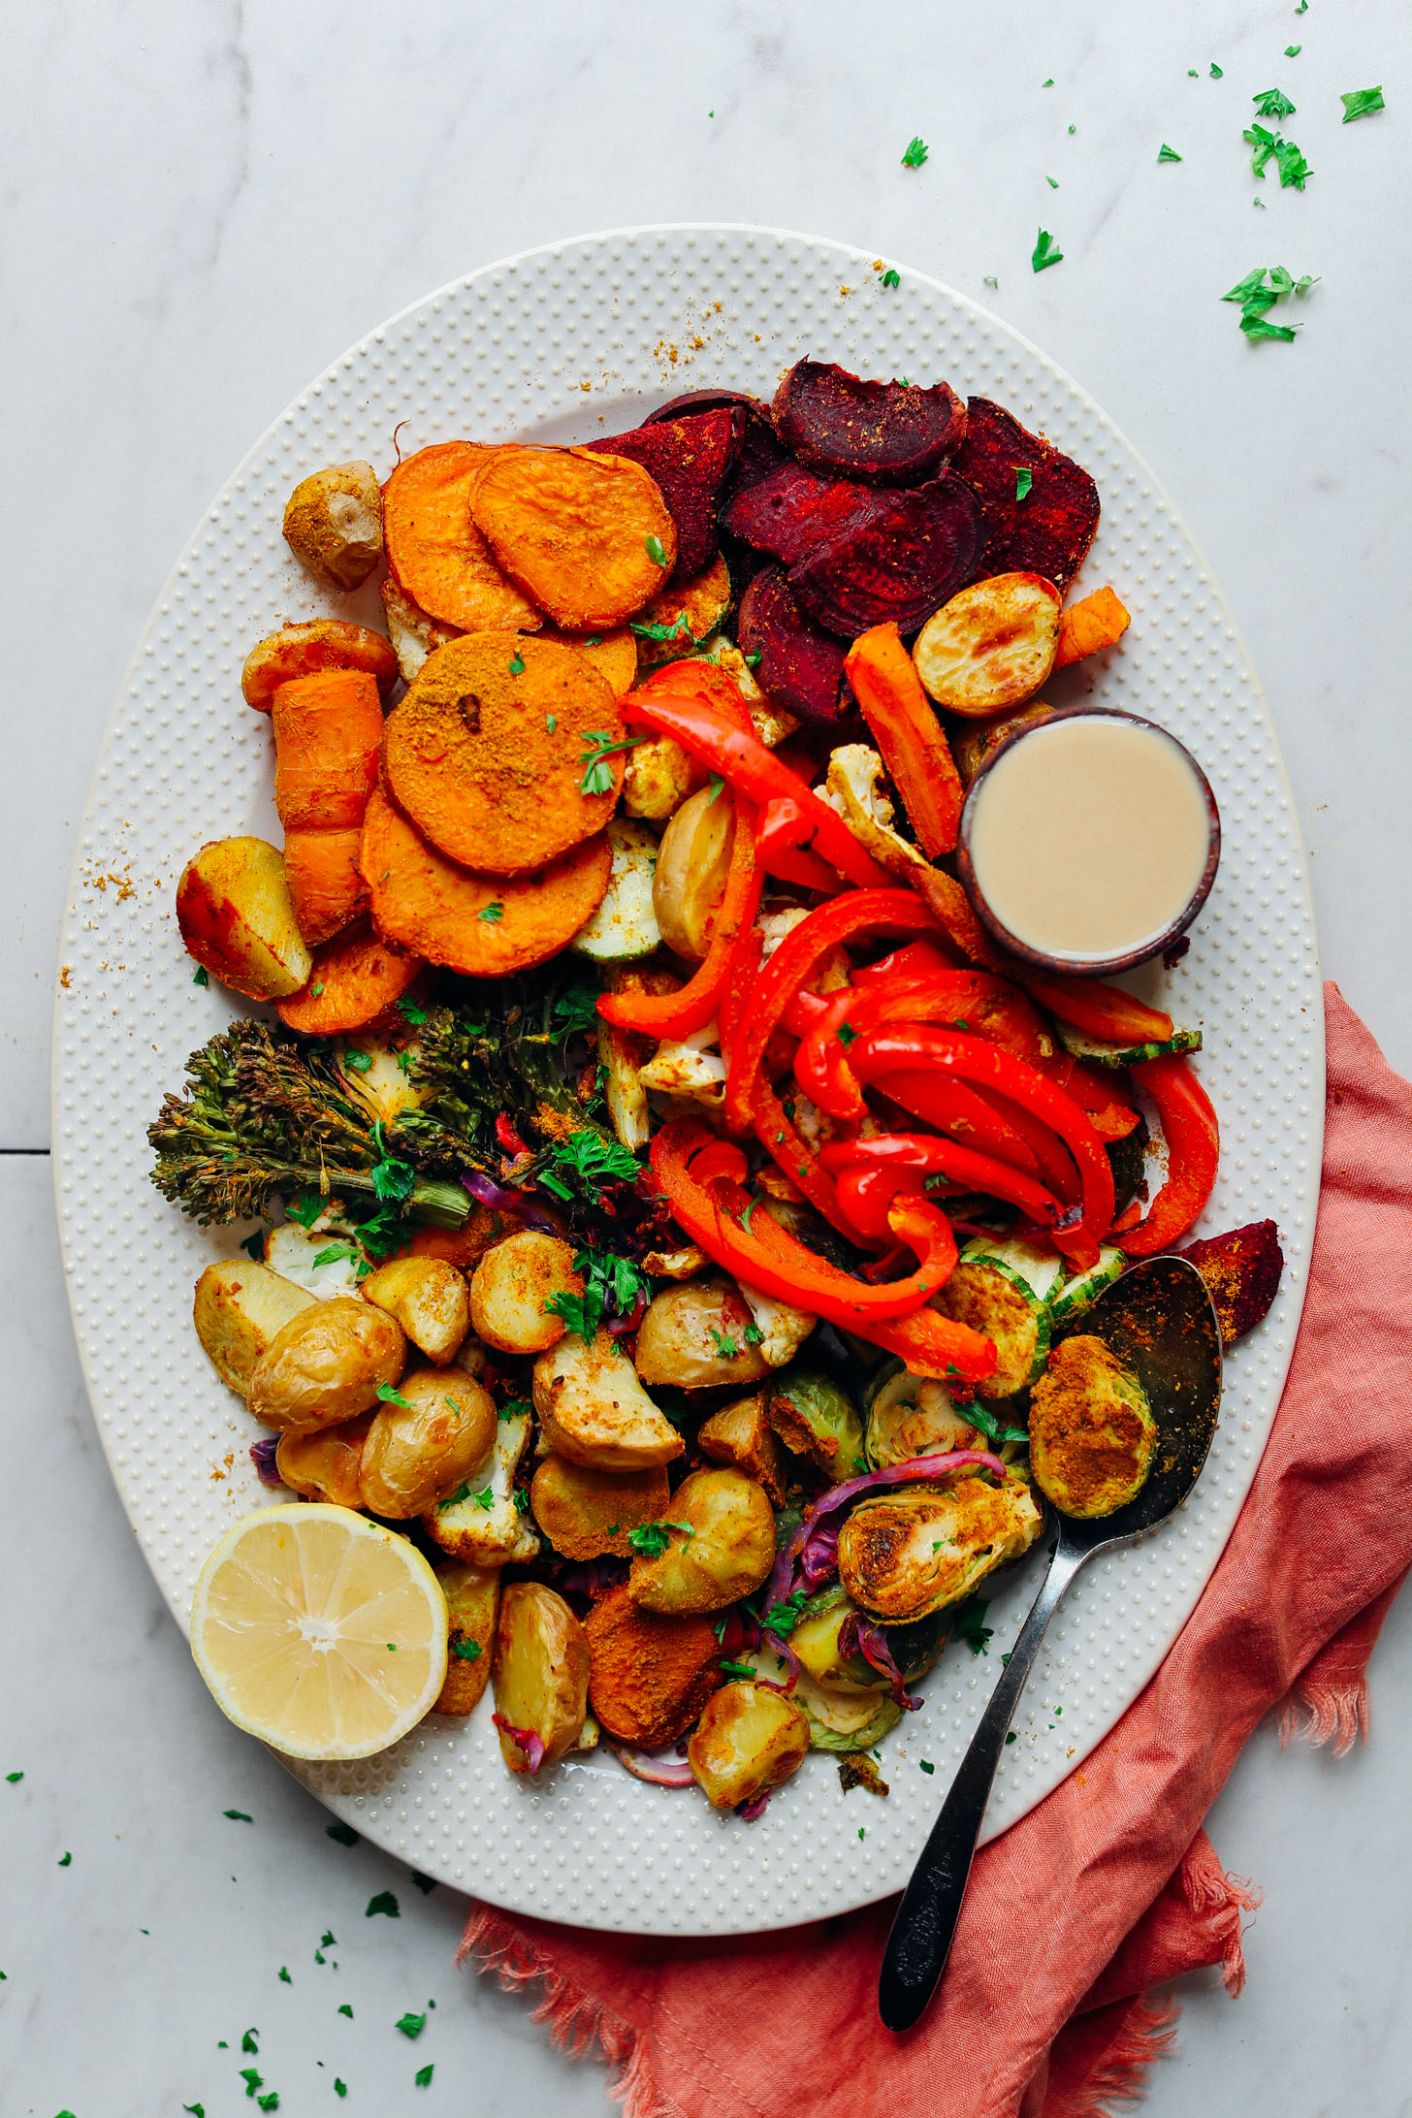 Oil-Free Roasted Vegetables - Healthy Recipes Vegetables